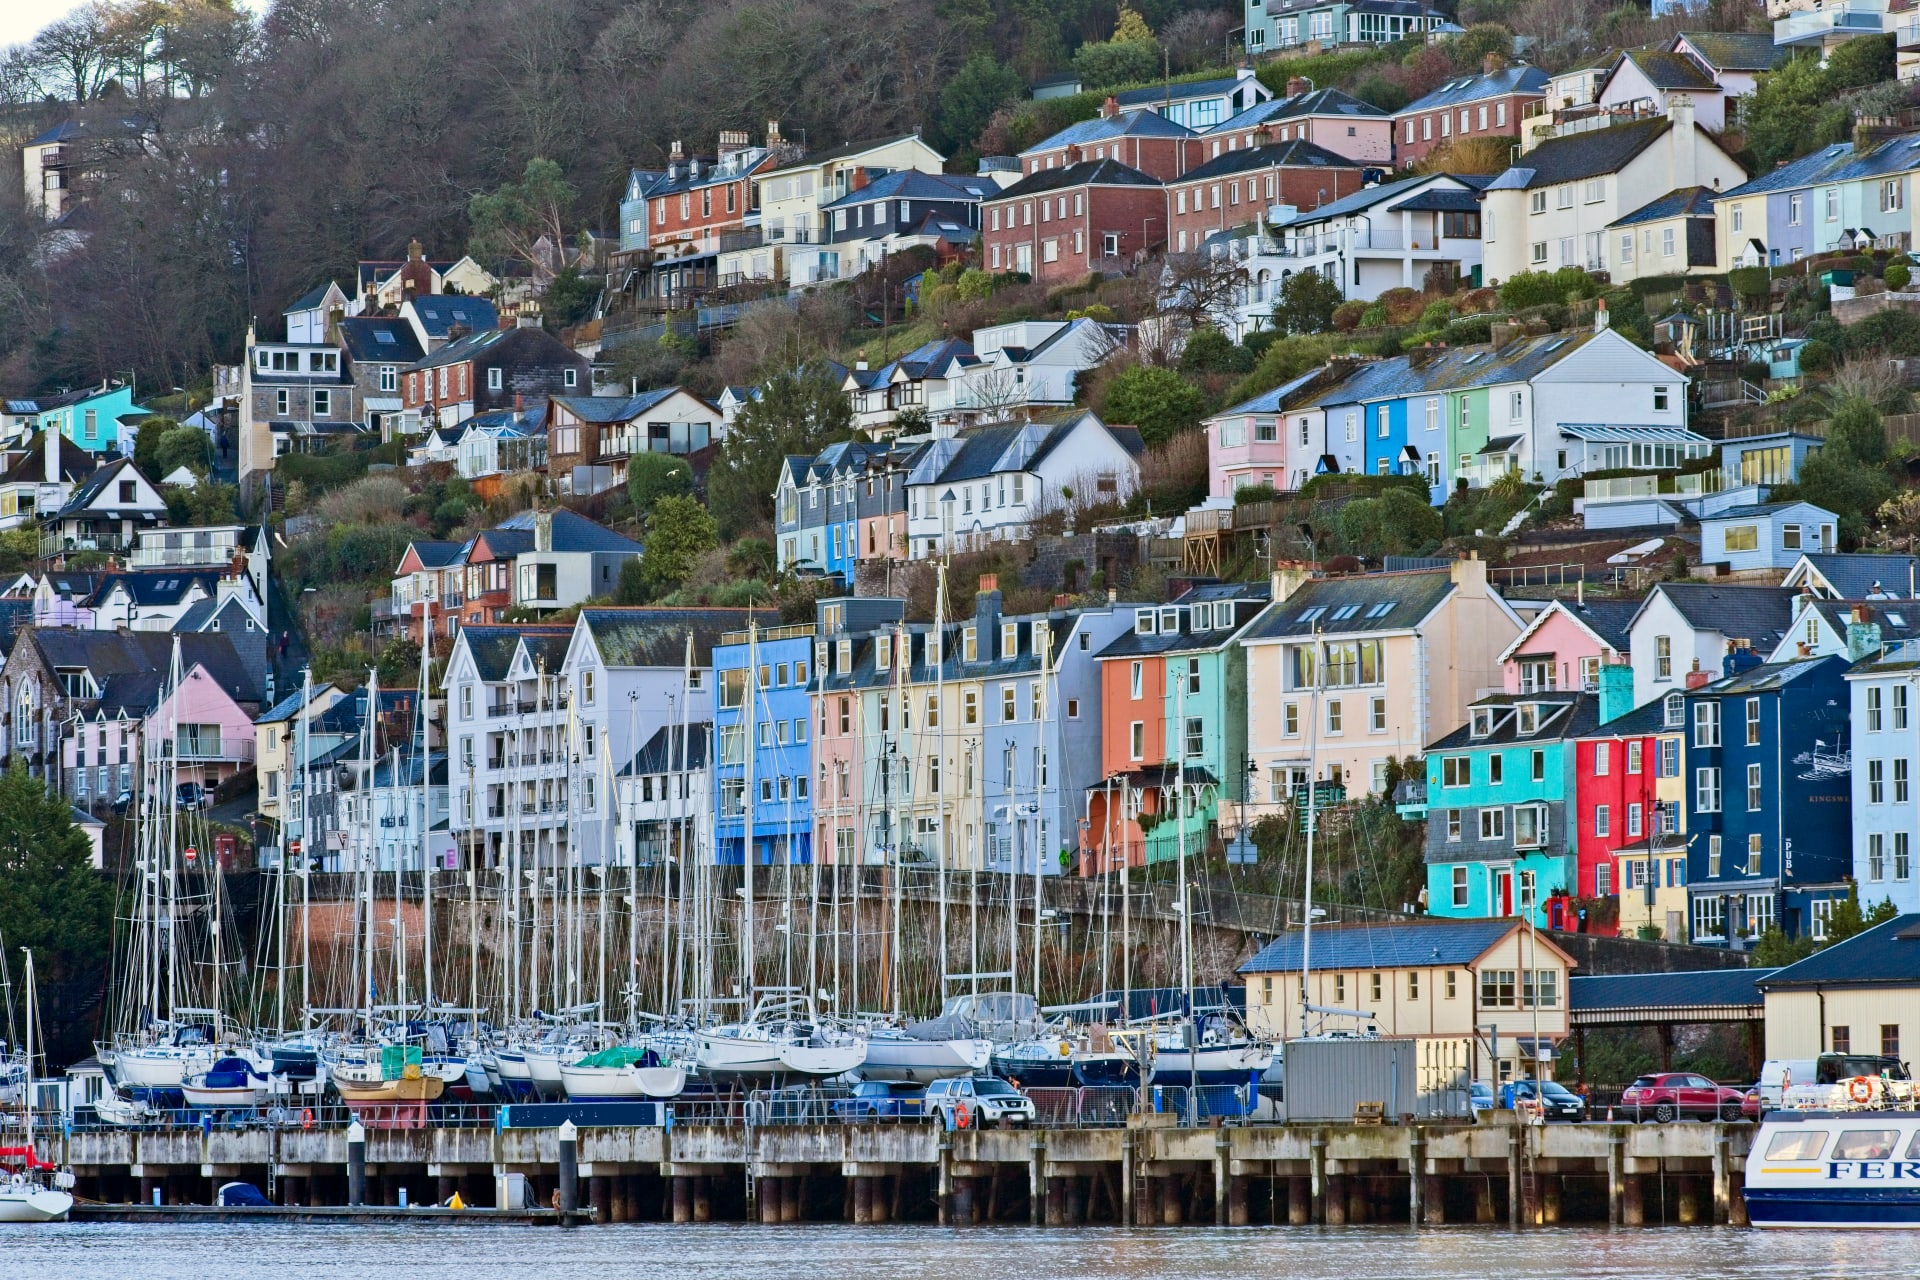 Devon - Dartmouth: maritime town with a Mayflower connection (Silent Tour)